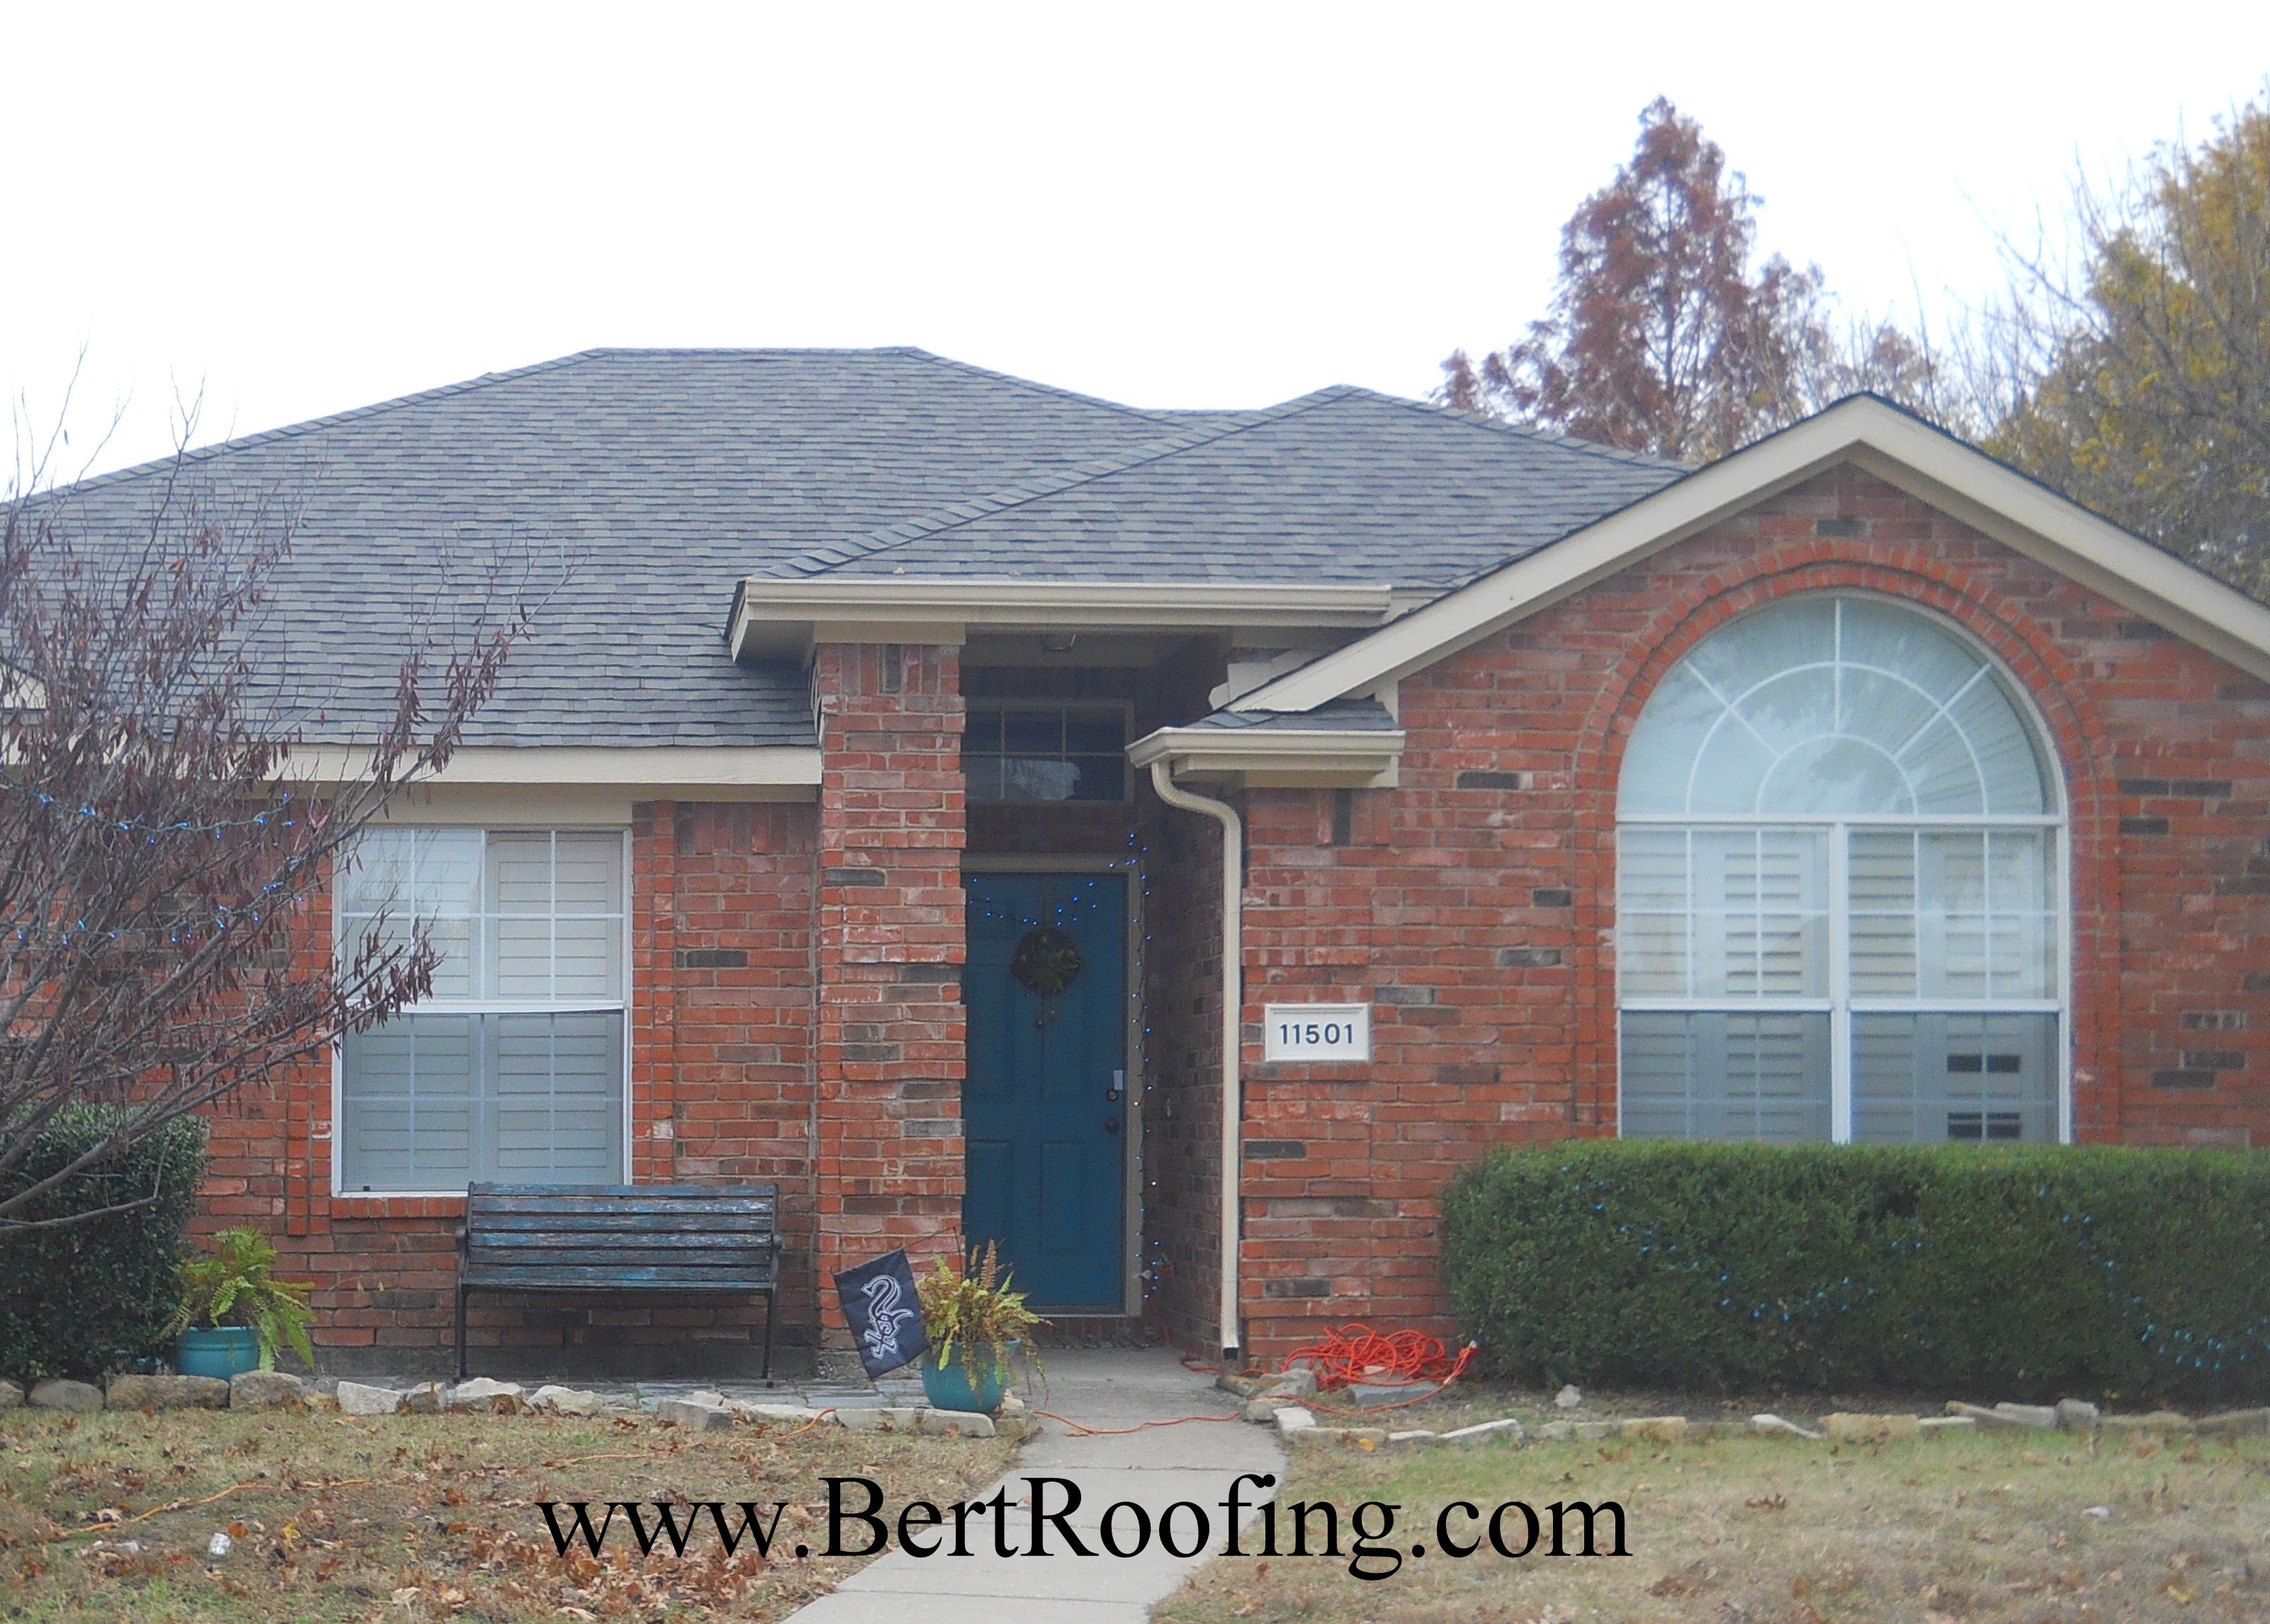 CertainTeed Landmark Composition Shingle, Color Weathered Wood. Installed  By Bert Roofing Inc Of Dallas